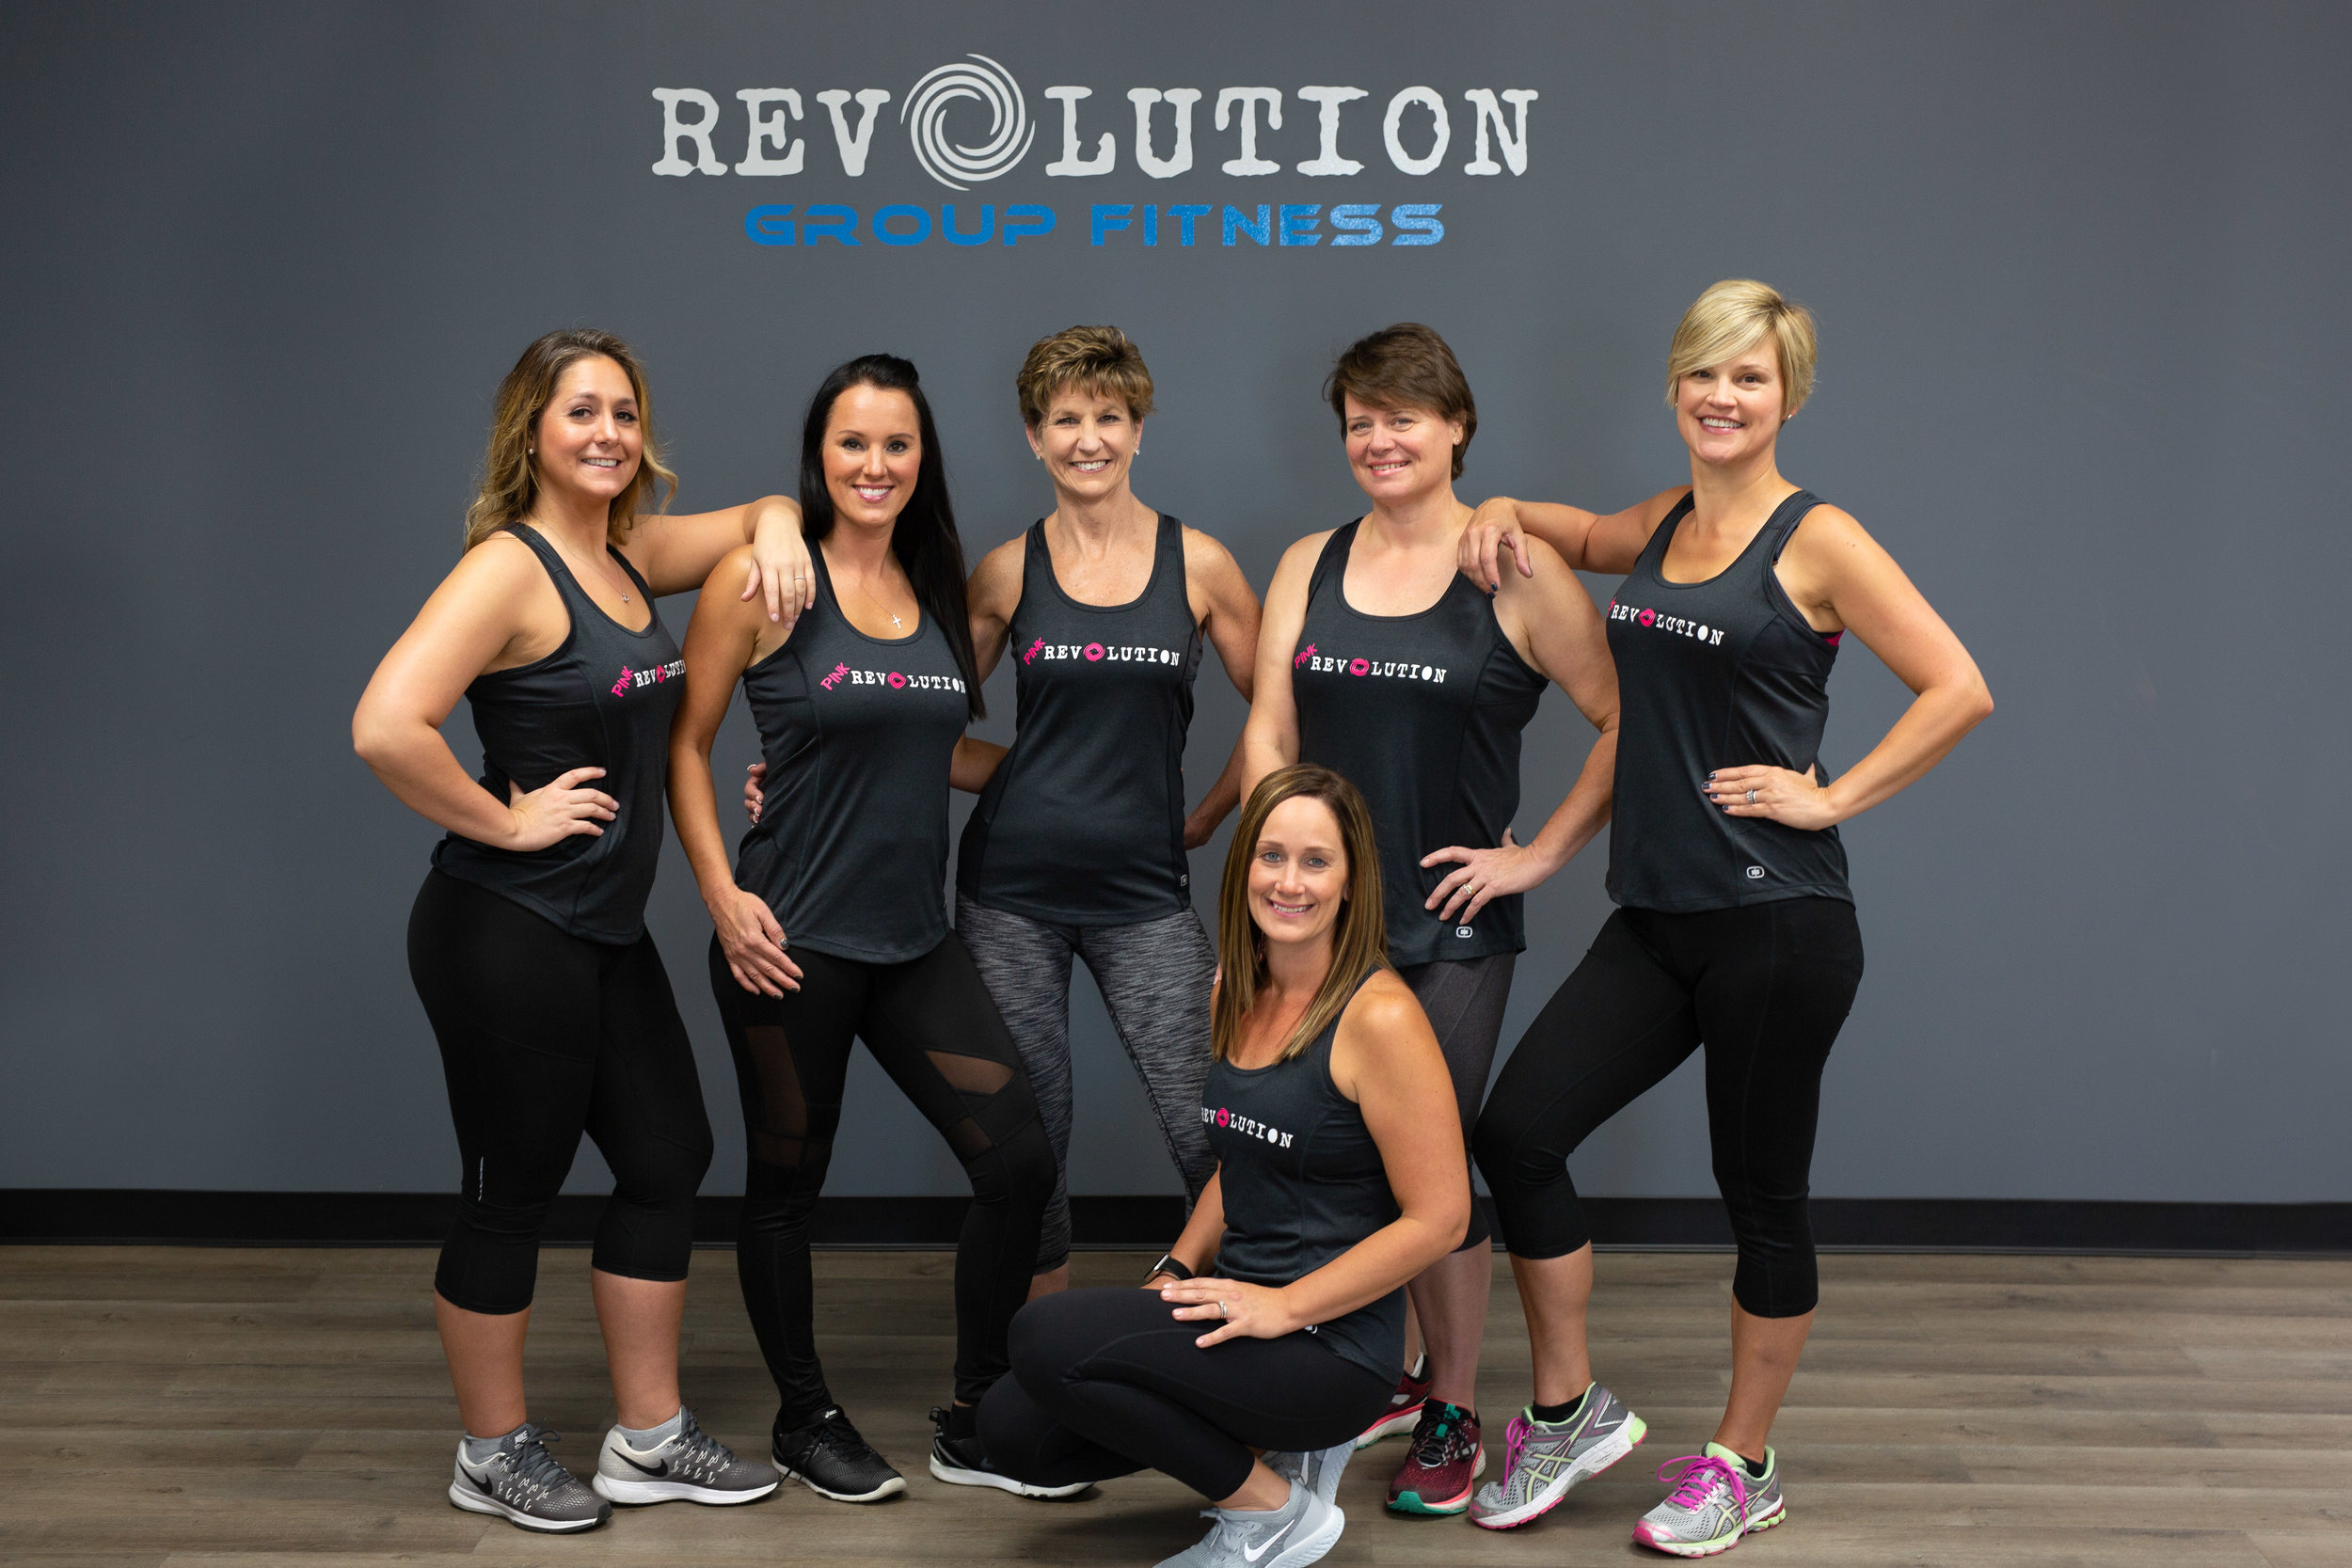 PINK REVOLUTION - We are PINK! Just a group of women who are: Passionate, Inspired, Non-judgmental, and have become Kindred-Spirits.To get involved with the next group of Women's PINK REVOLUTION, contact Ali.